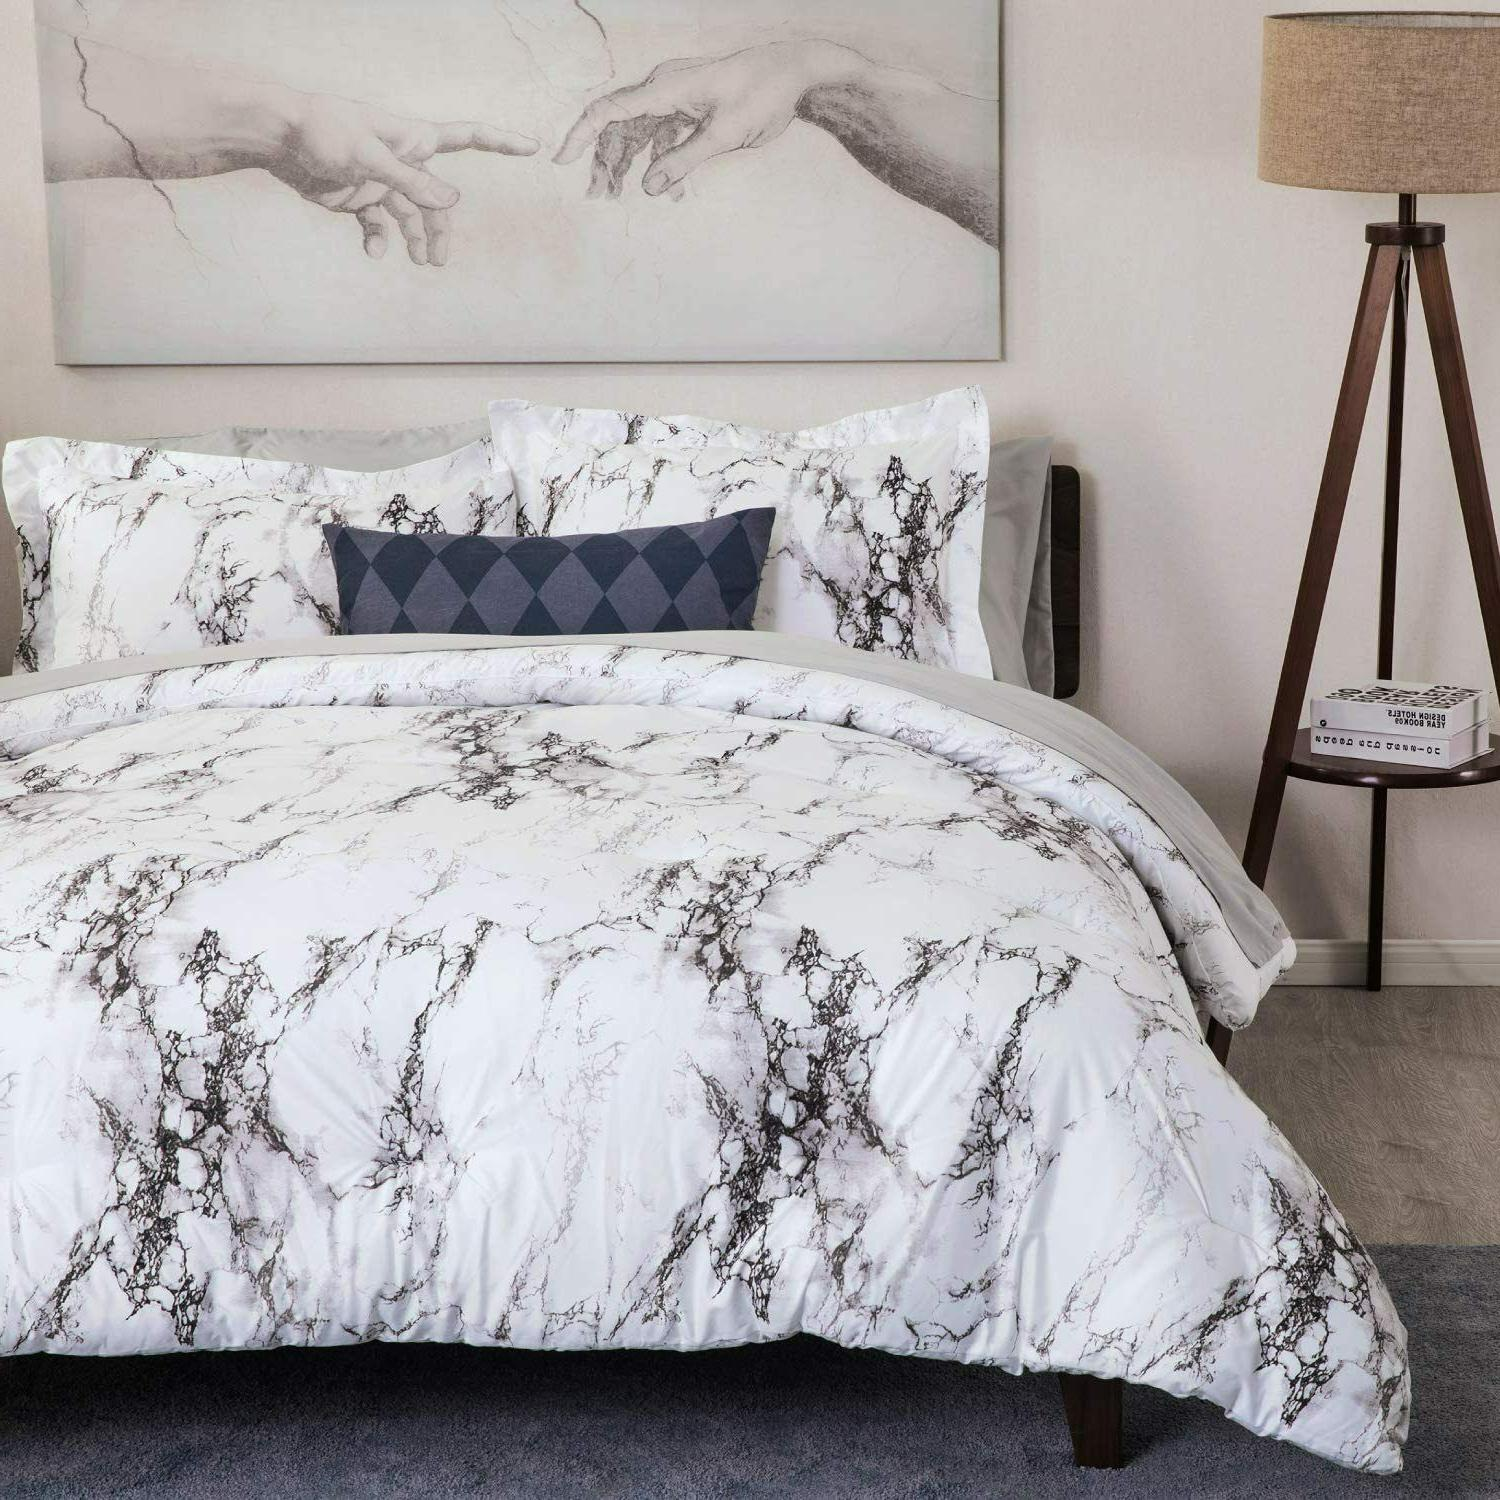 3pc white marble printed duvet cover set